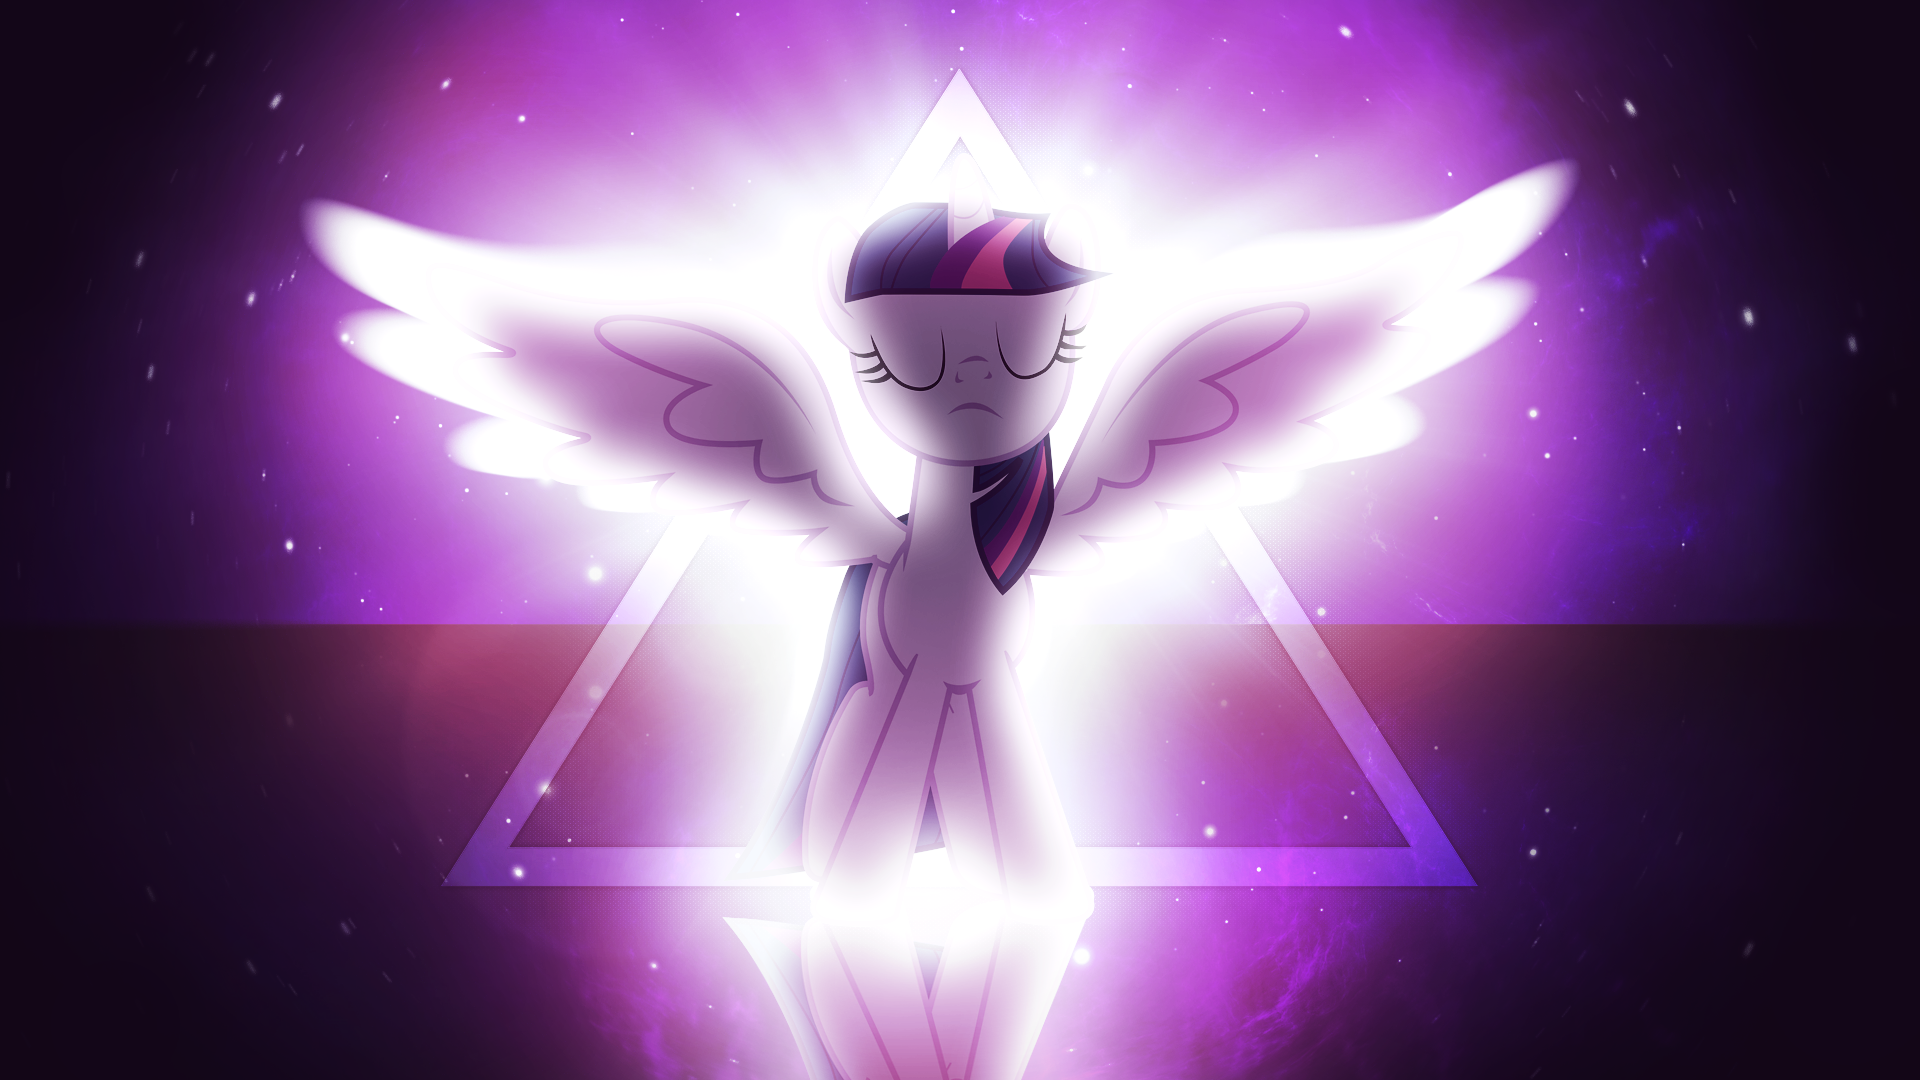 twilight sparkle wallpaper - photo #44